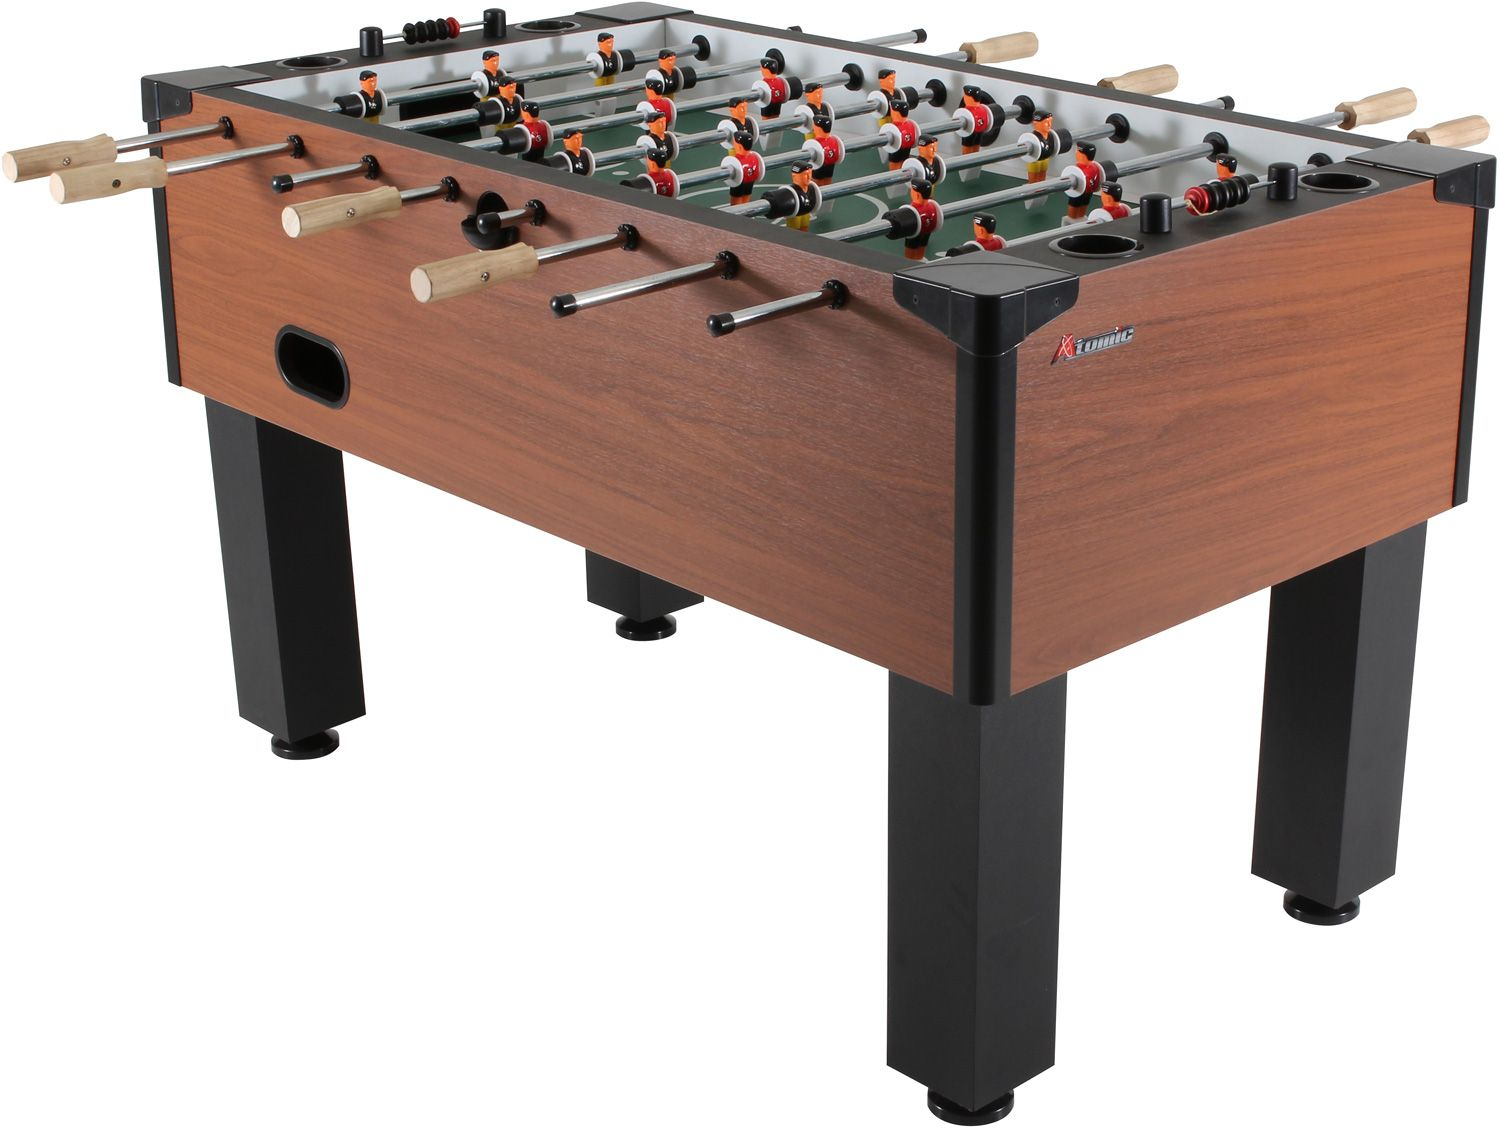 Atomic Gladiator Foosball Table DICKS Sporting Goods - Where to buy foosball table